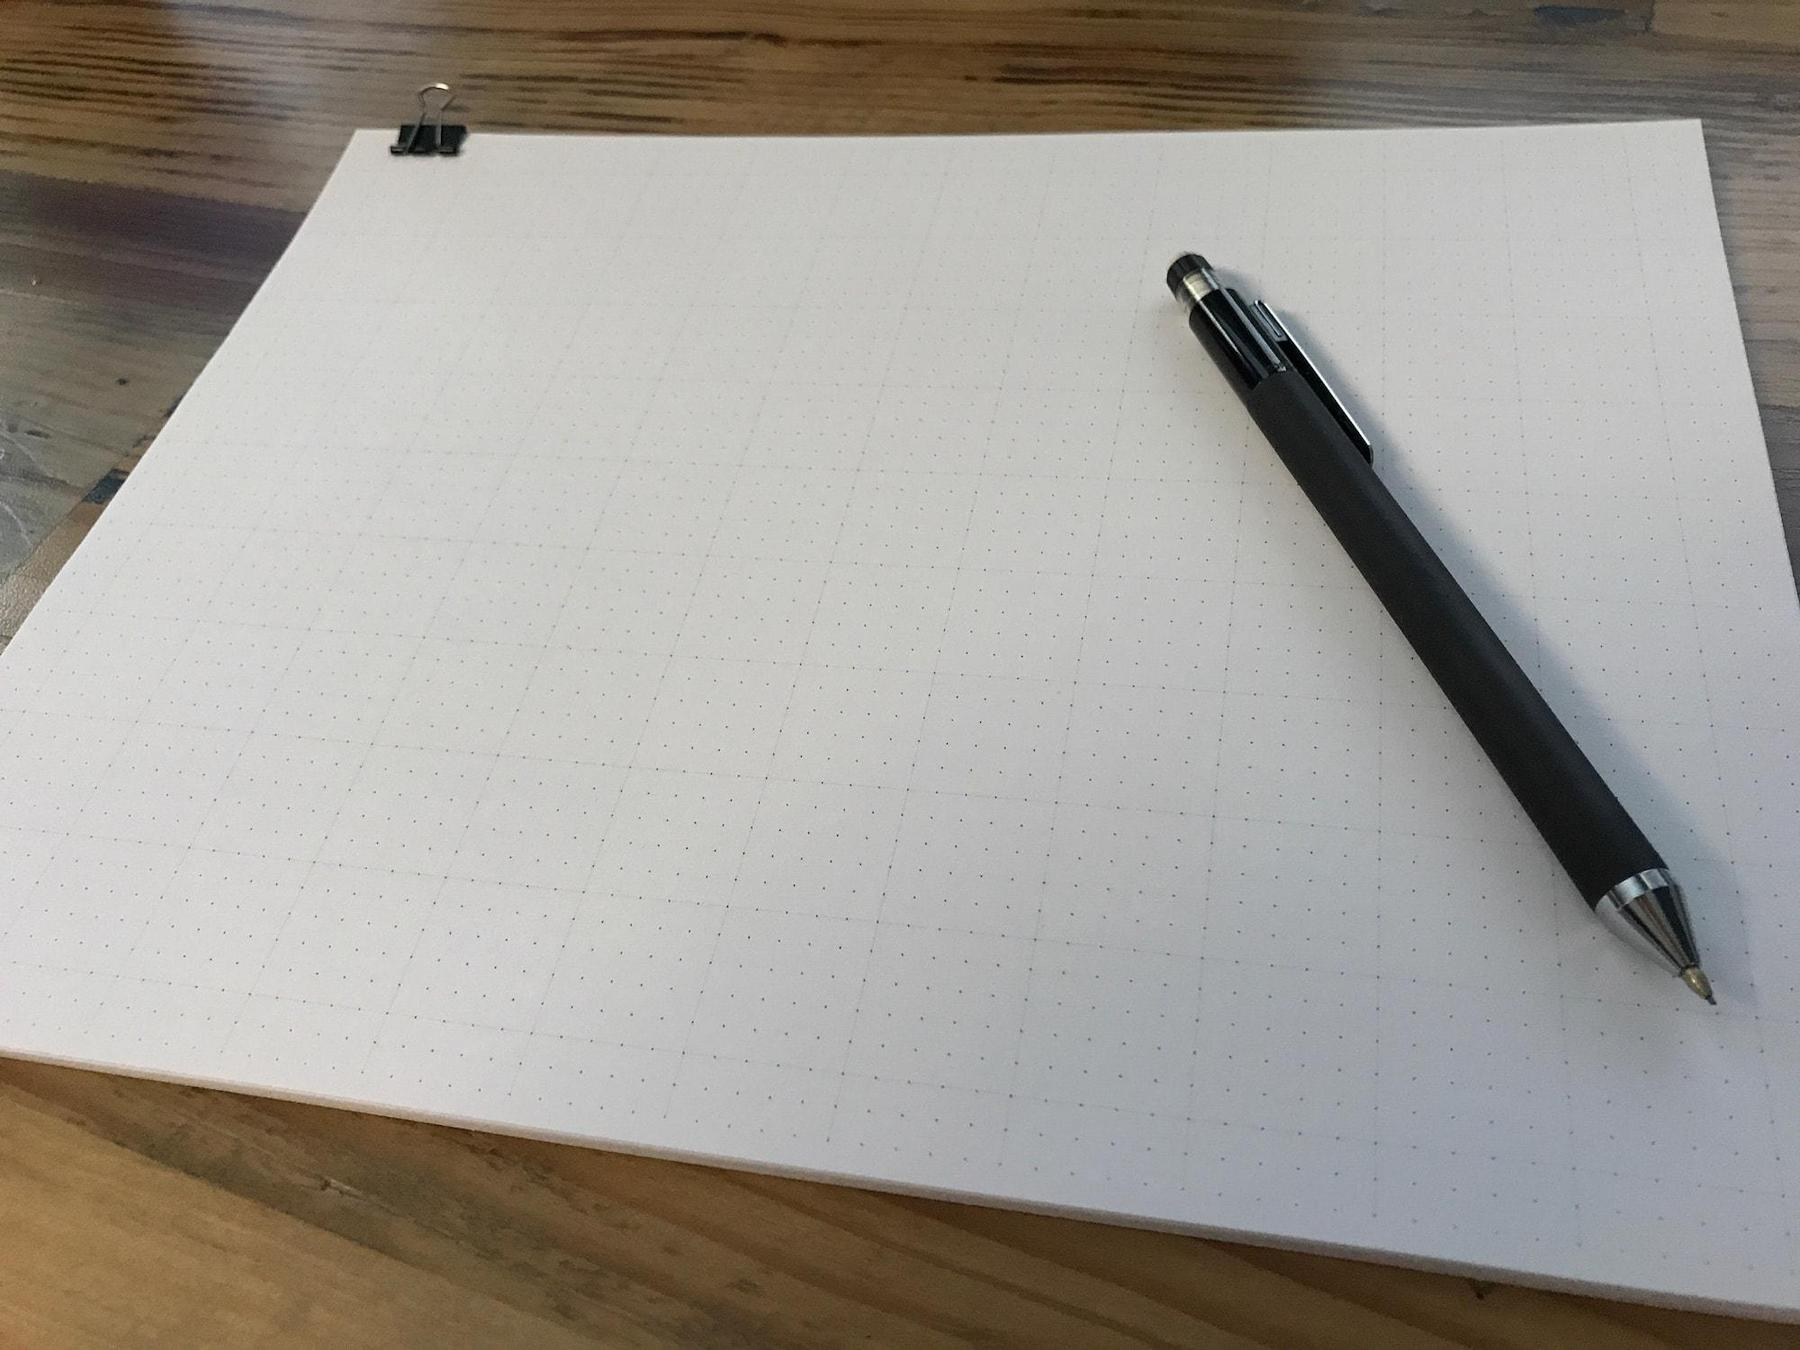 Dot paper on a desk with a mechanical pencil